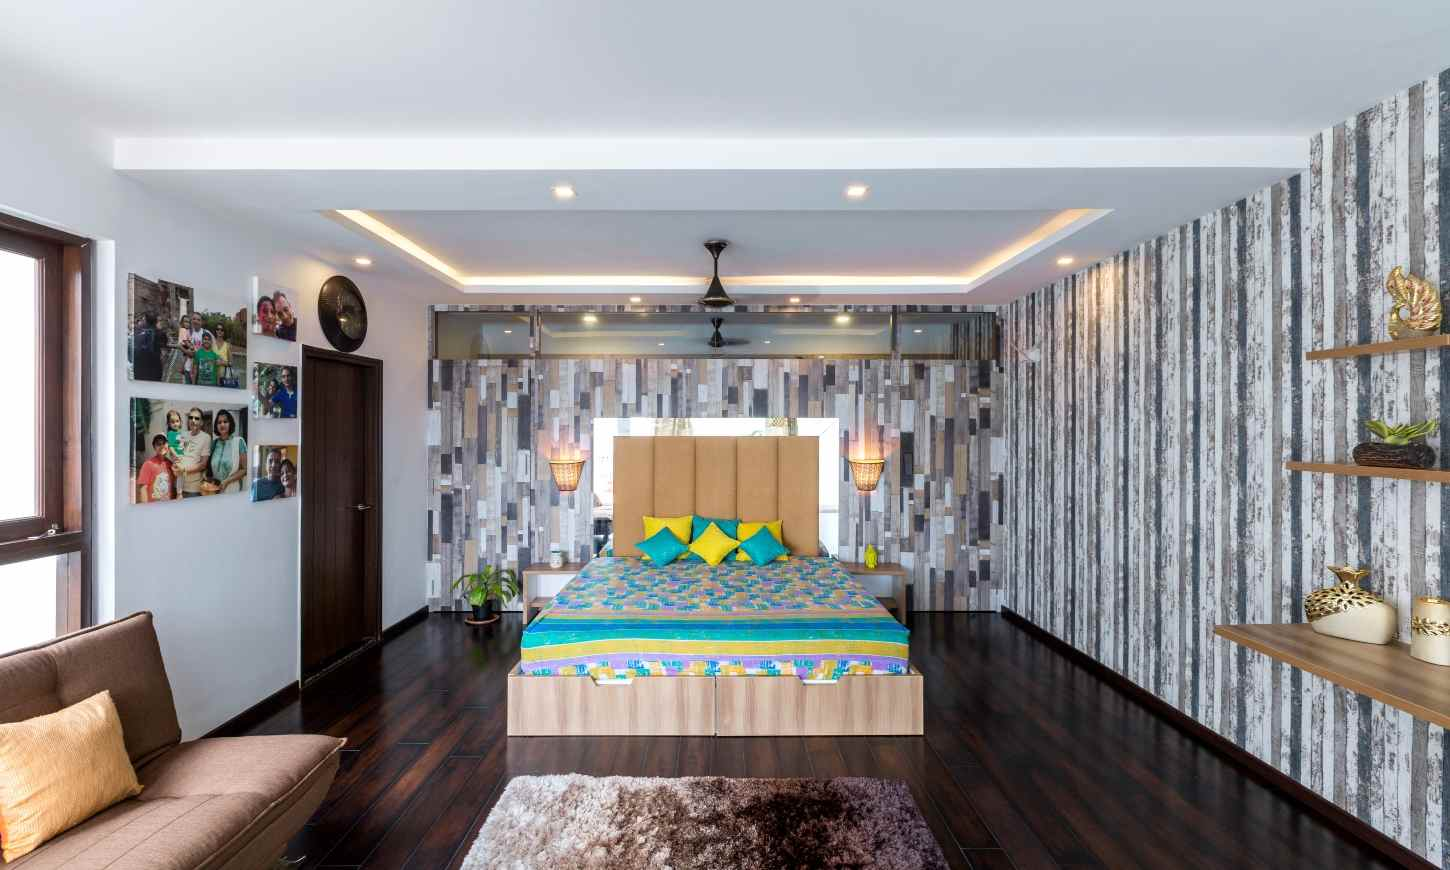 Low budget interior designers in bangalore with a bedroom with bold patterns